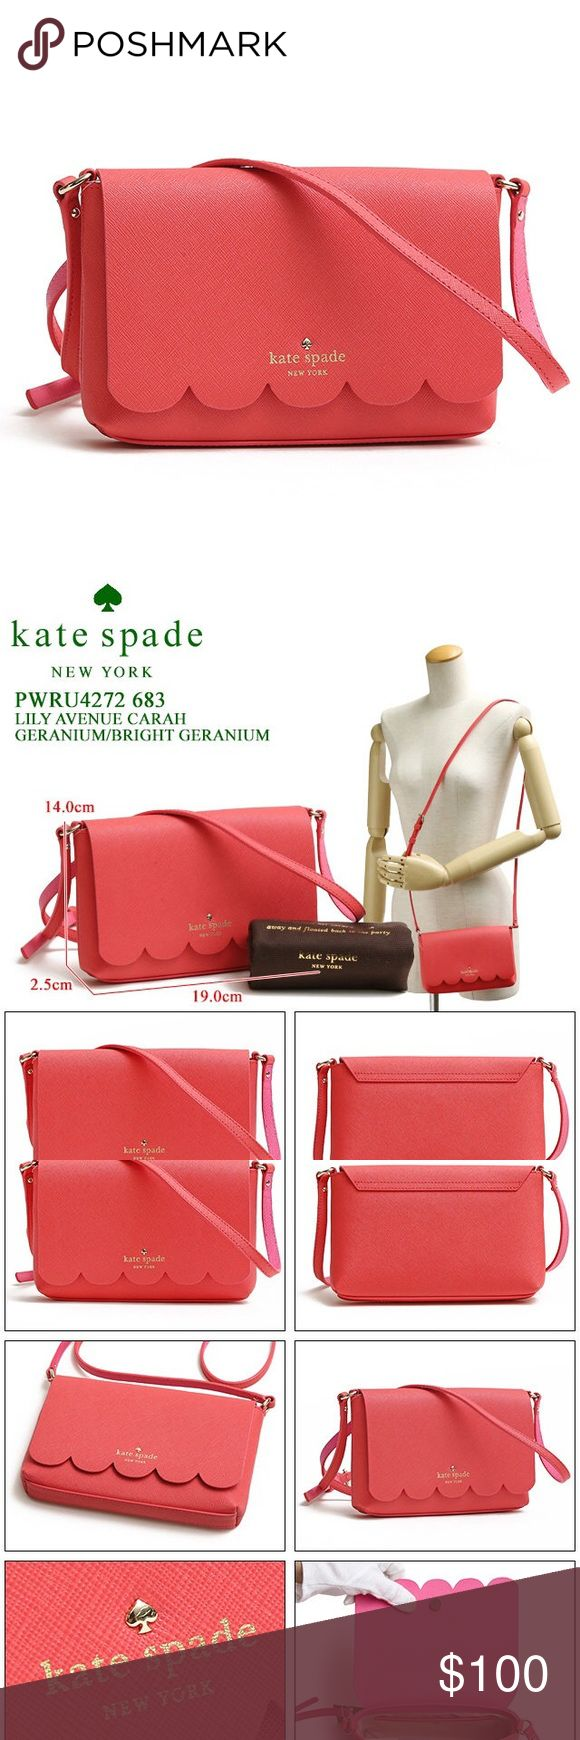 Kate Spade Lily Avenue Carah Crossbody Pink geranium color. Brand new with tags. kate spade Bags Crossbody Bags